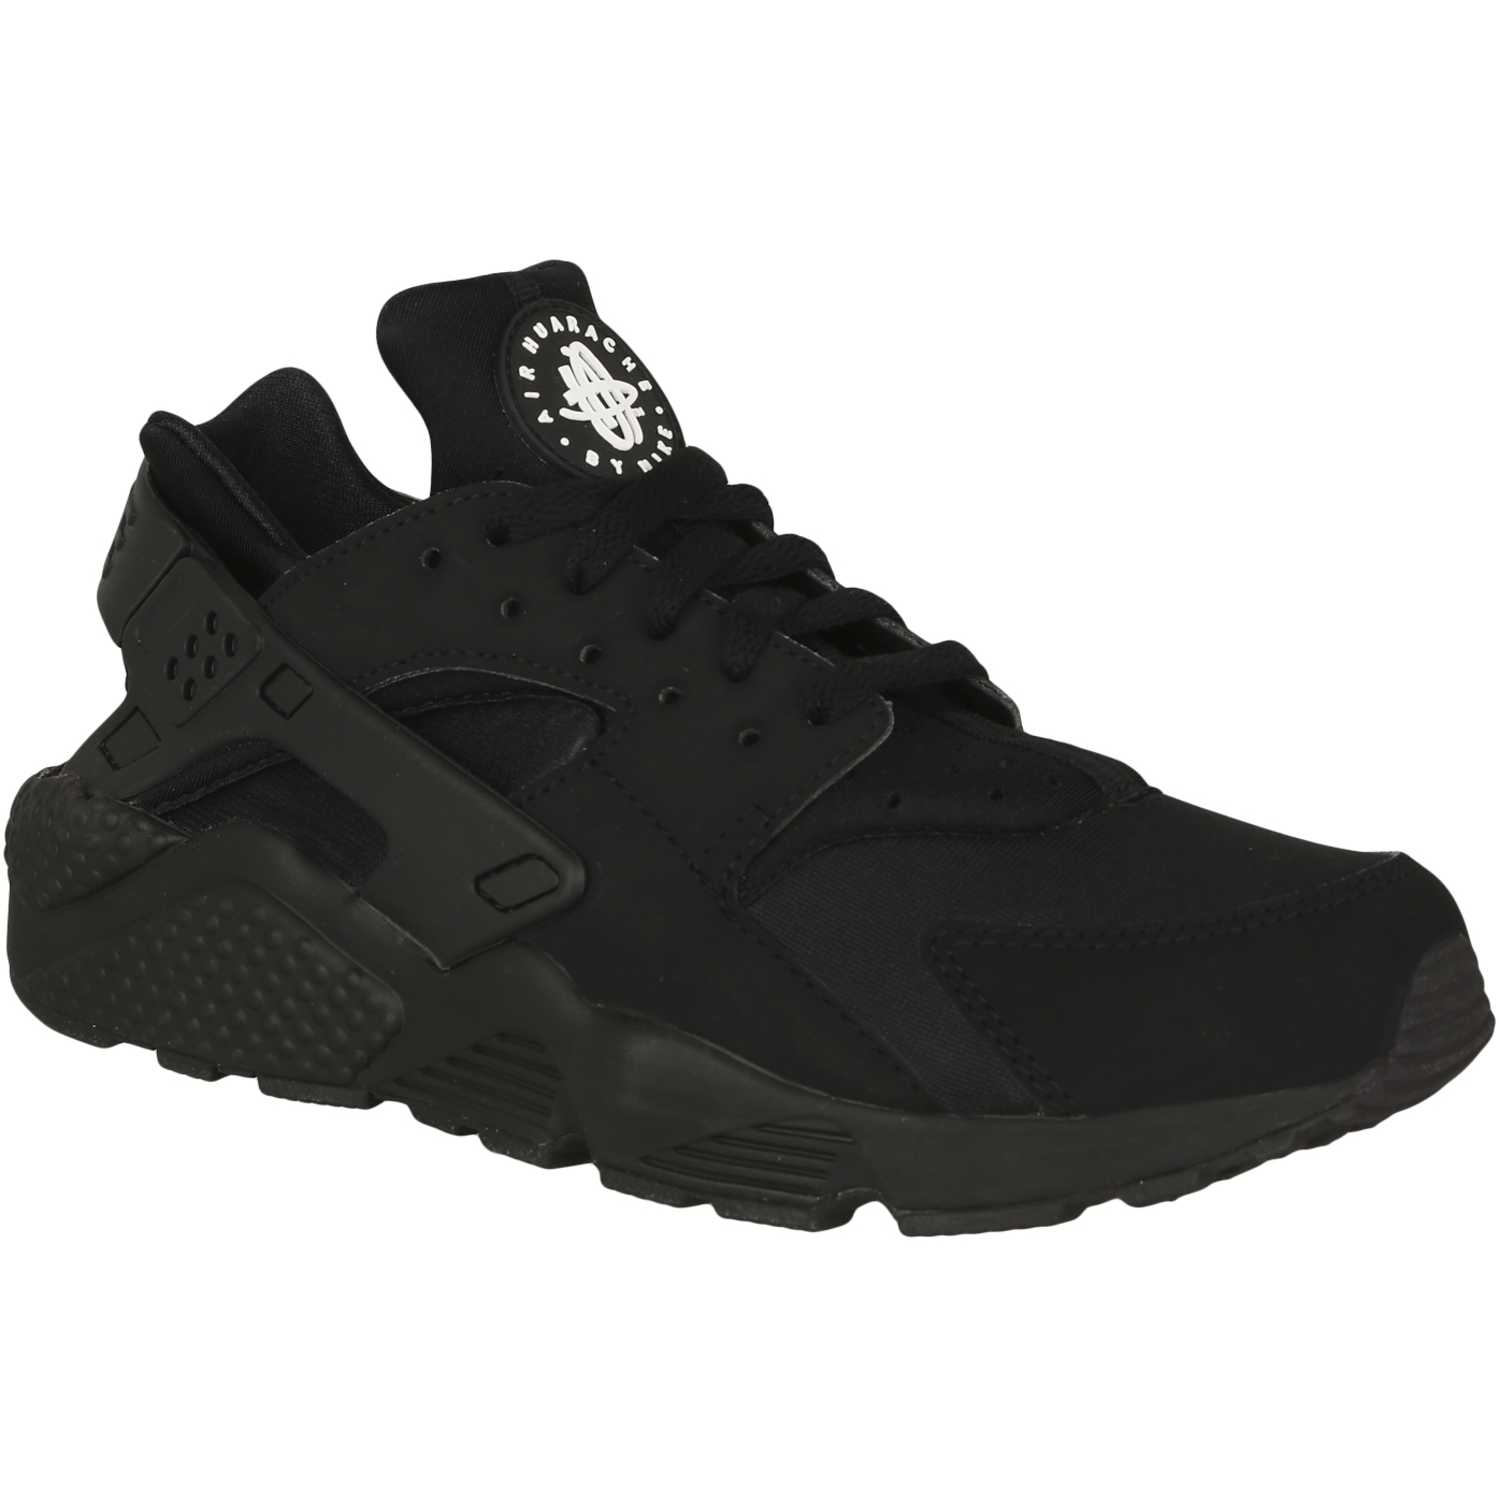 check out 4e4c1 acb09 Zapatilla de Hombre Nike Negro air huarache | platanitos.com